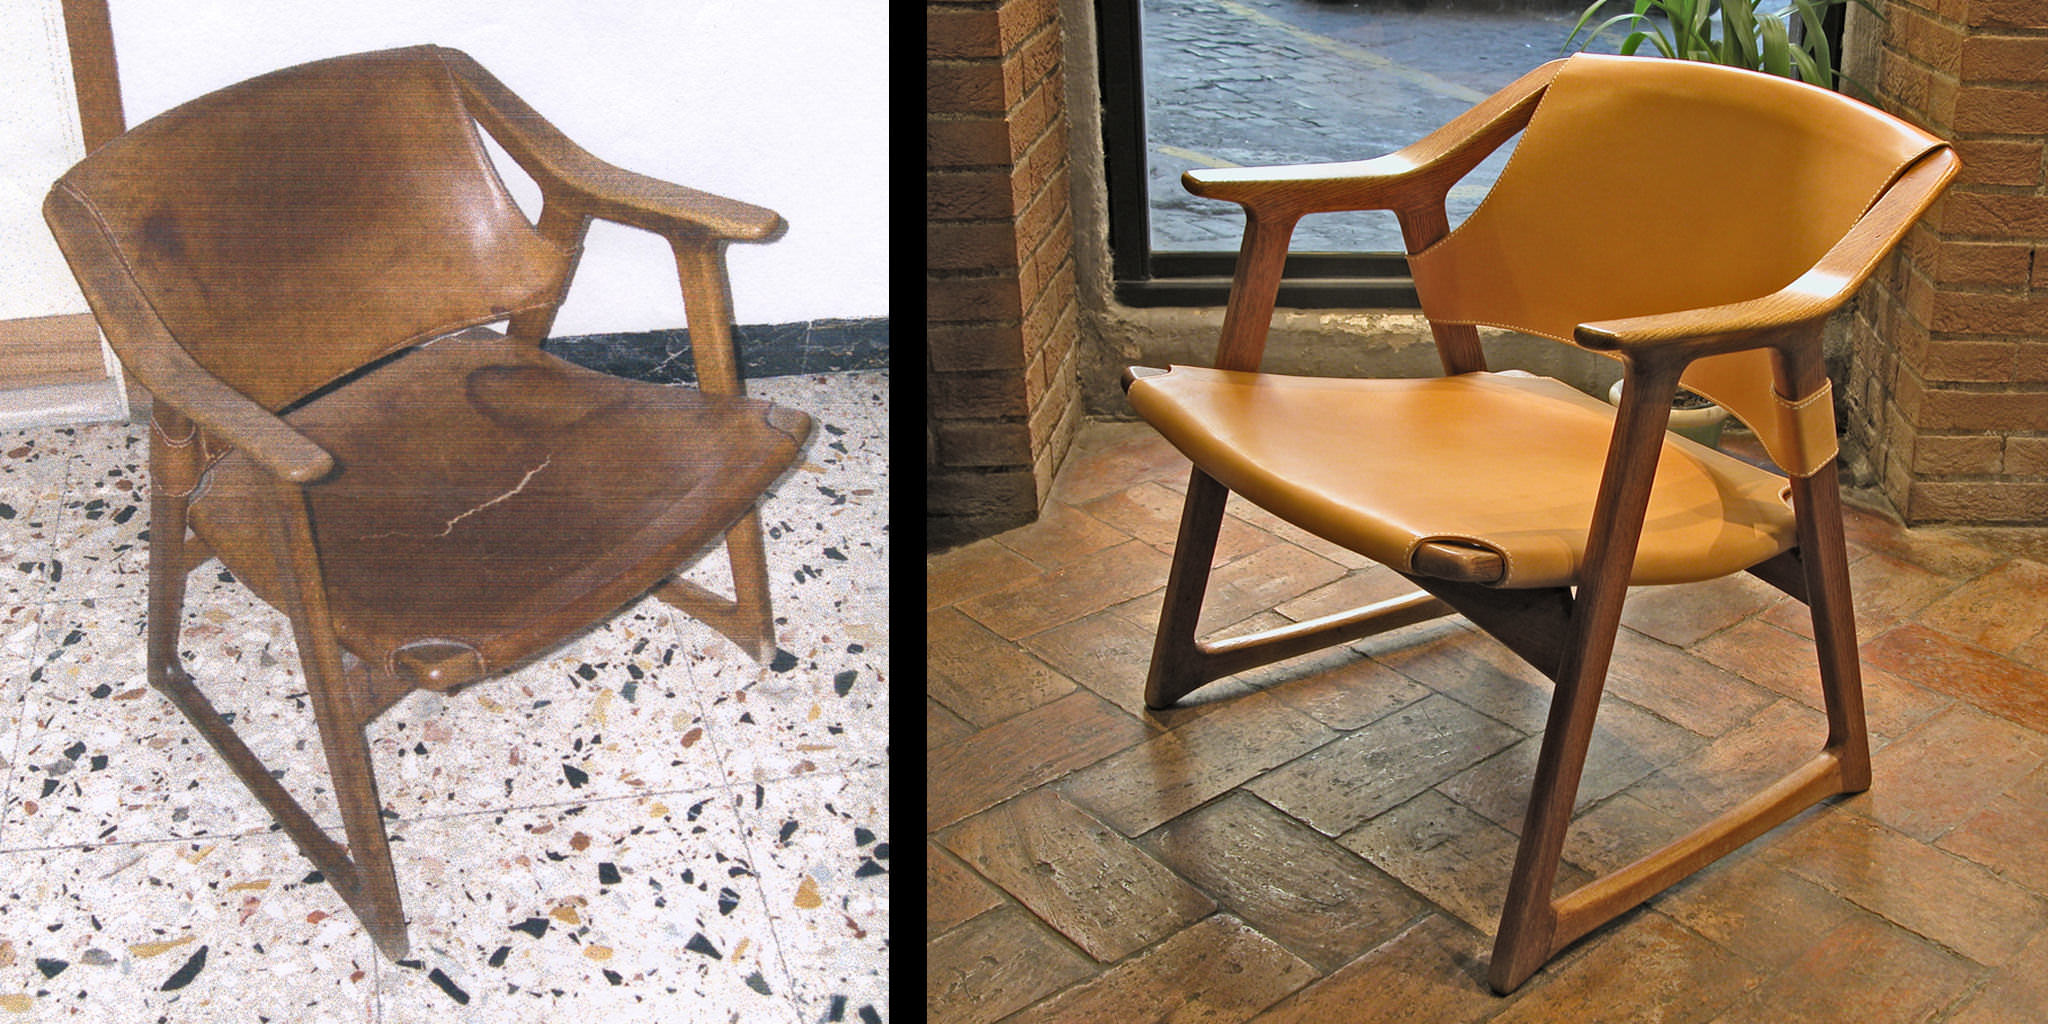 "Rolf Hesland ""Fox"" chair in natural leather and wood - before and after"